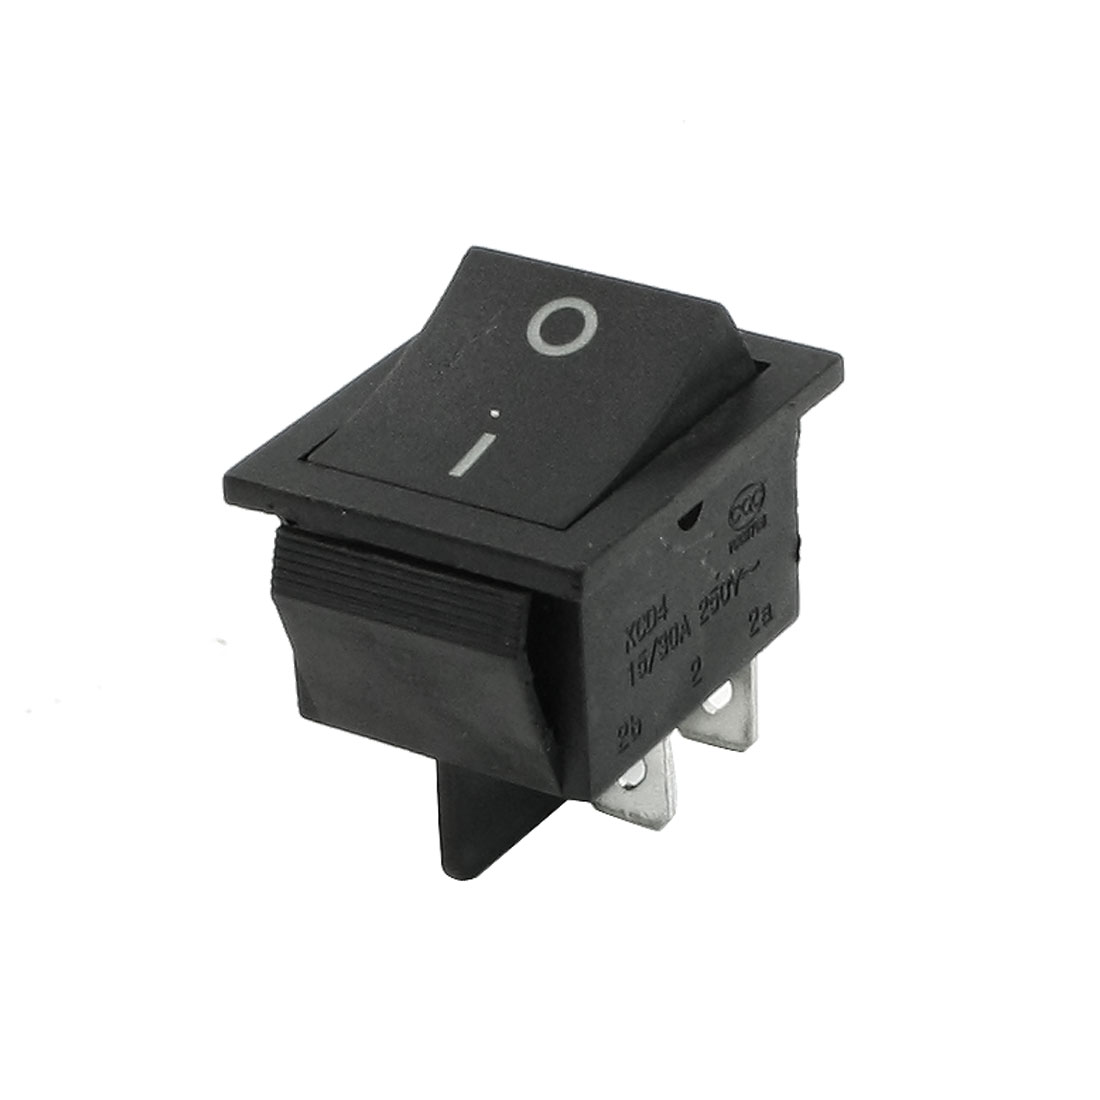 AC250V 15/30A 4 Pin ON/OFF 2 Position DPST Snap in Boat Rocker Switch